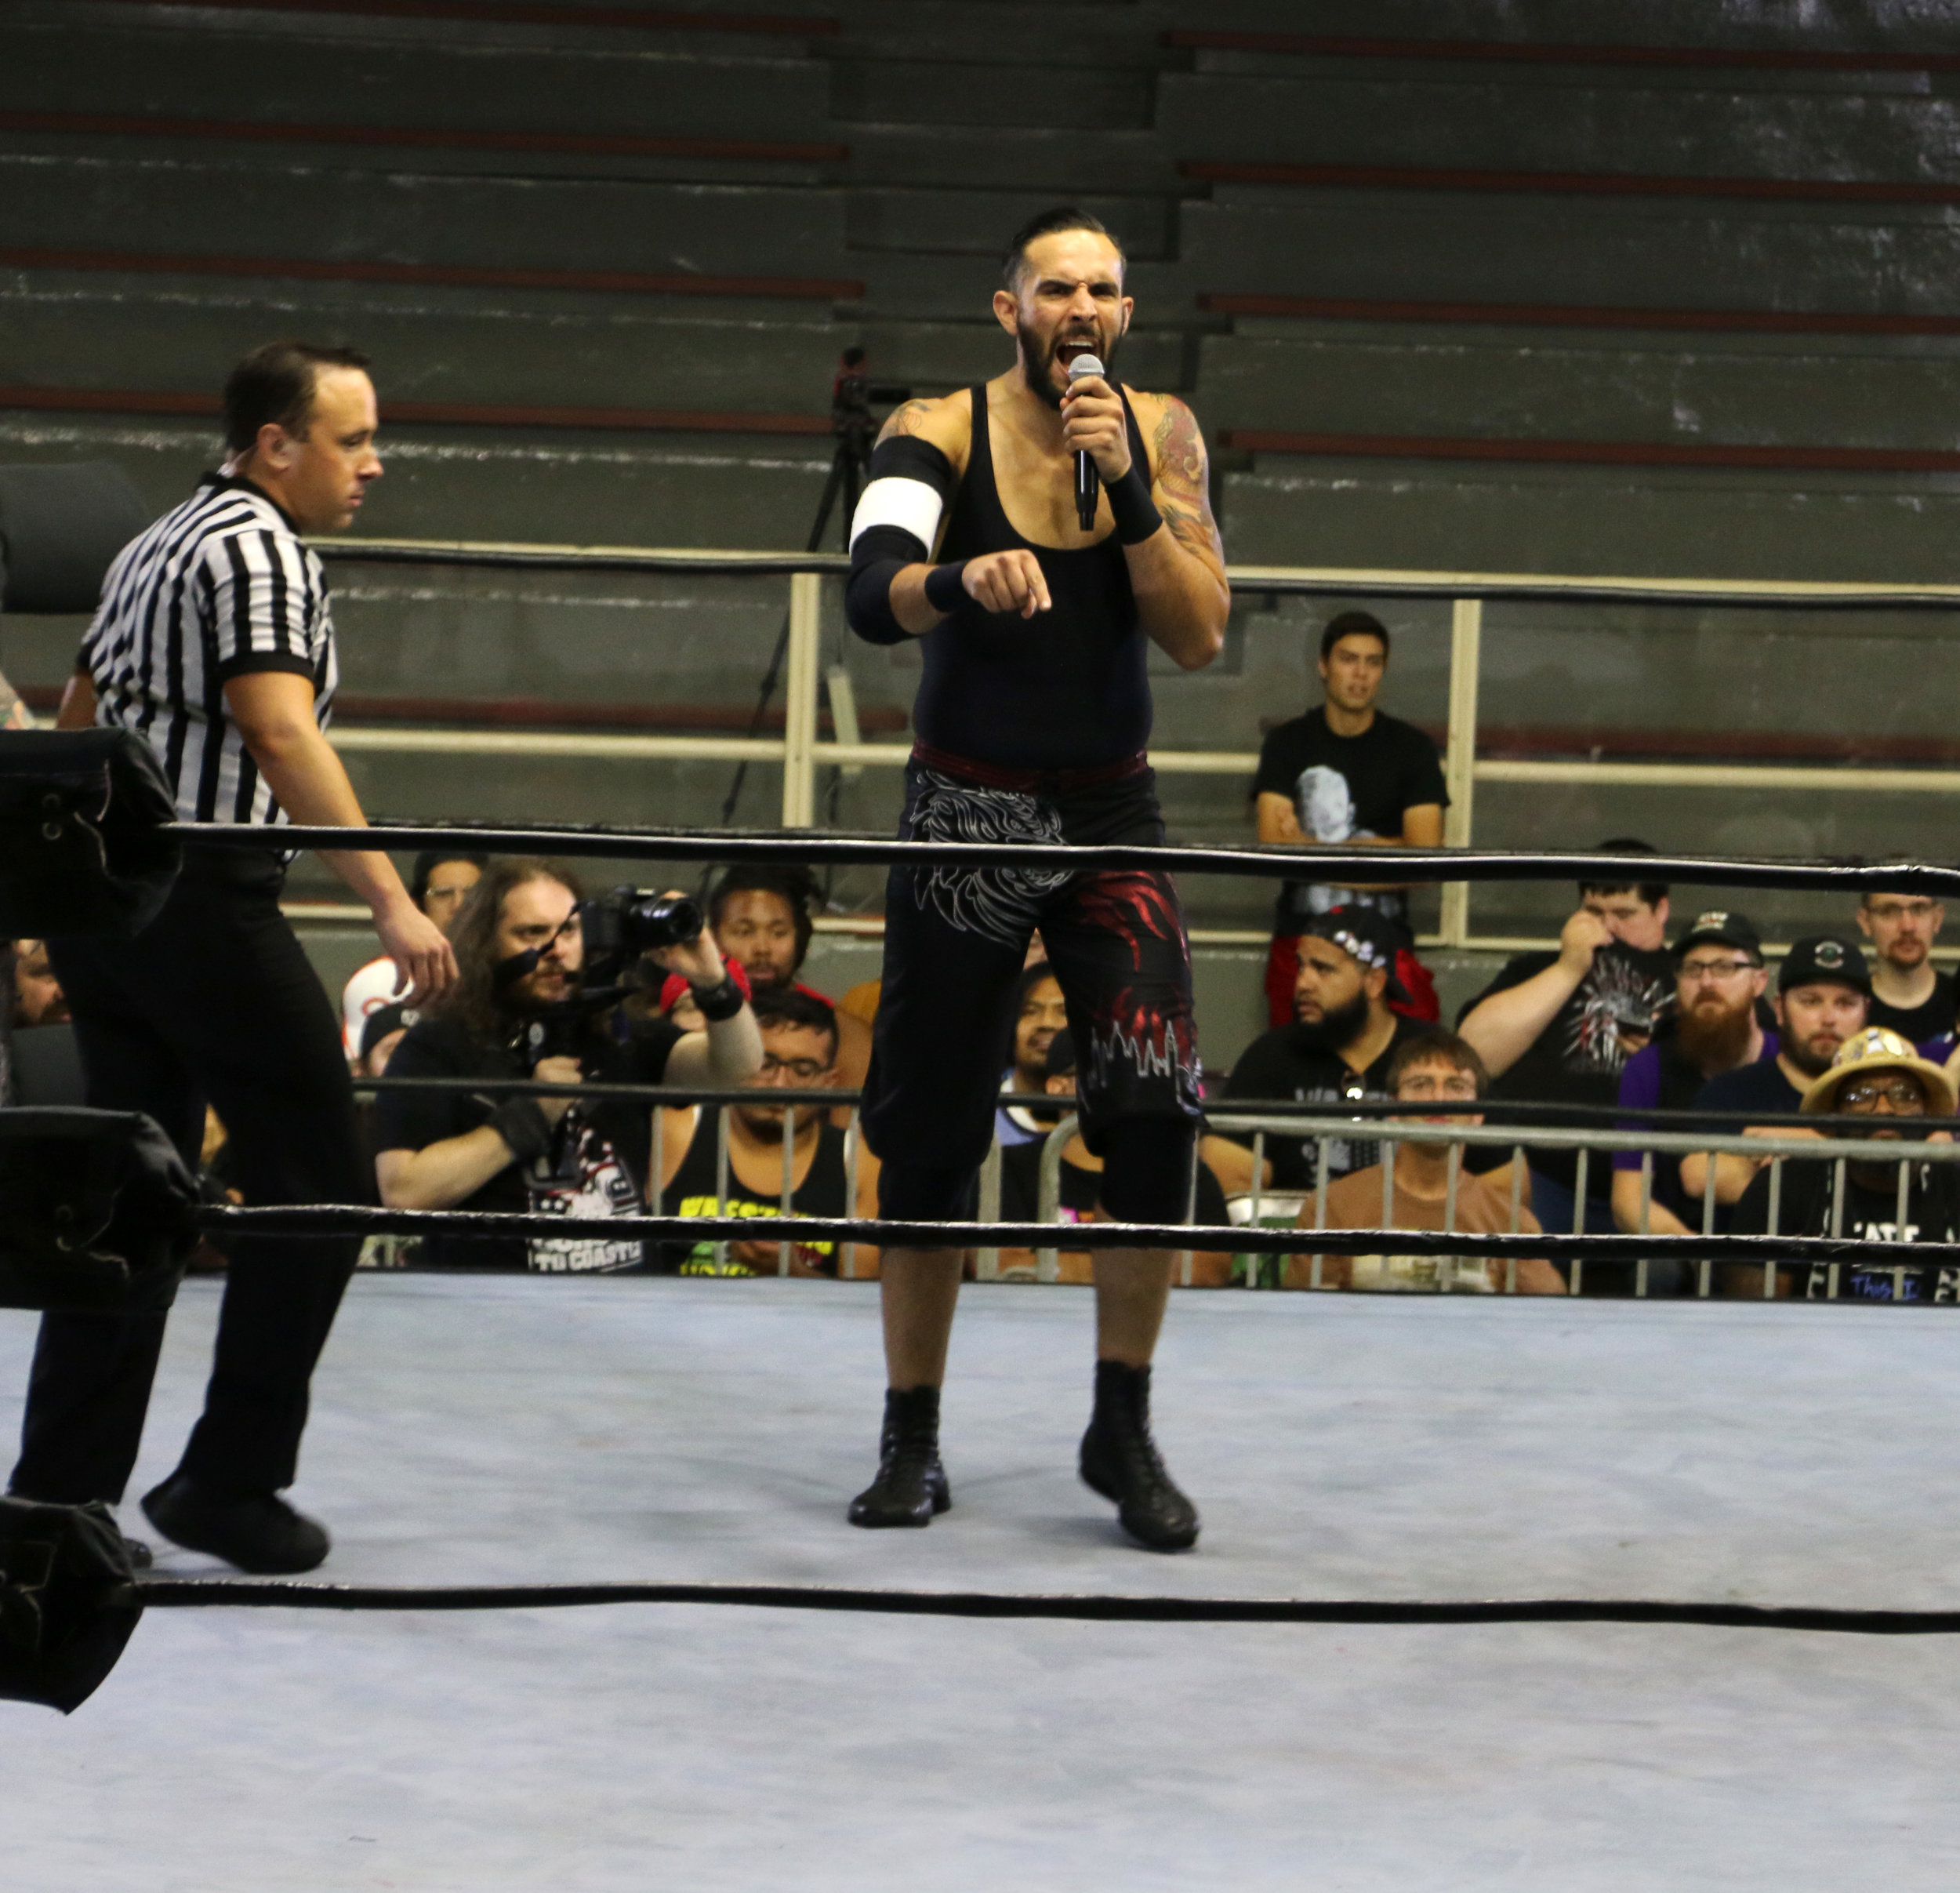 Eddie Dennis (pictured at PROGRESS Wrestling's Chicago show in August 2018) is one of NXT UK's brightest stars. He will face Dave Mastiff at NXT UK Takeover: Blackpool on Saturday night.